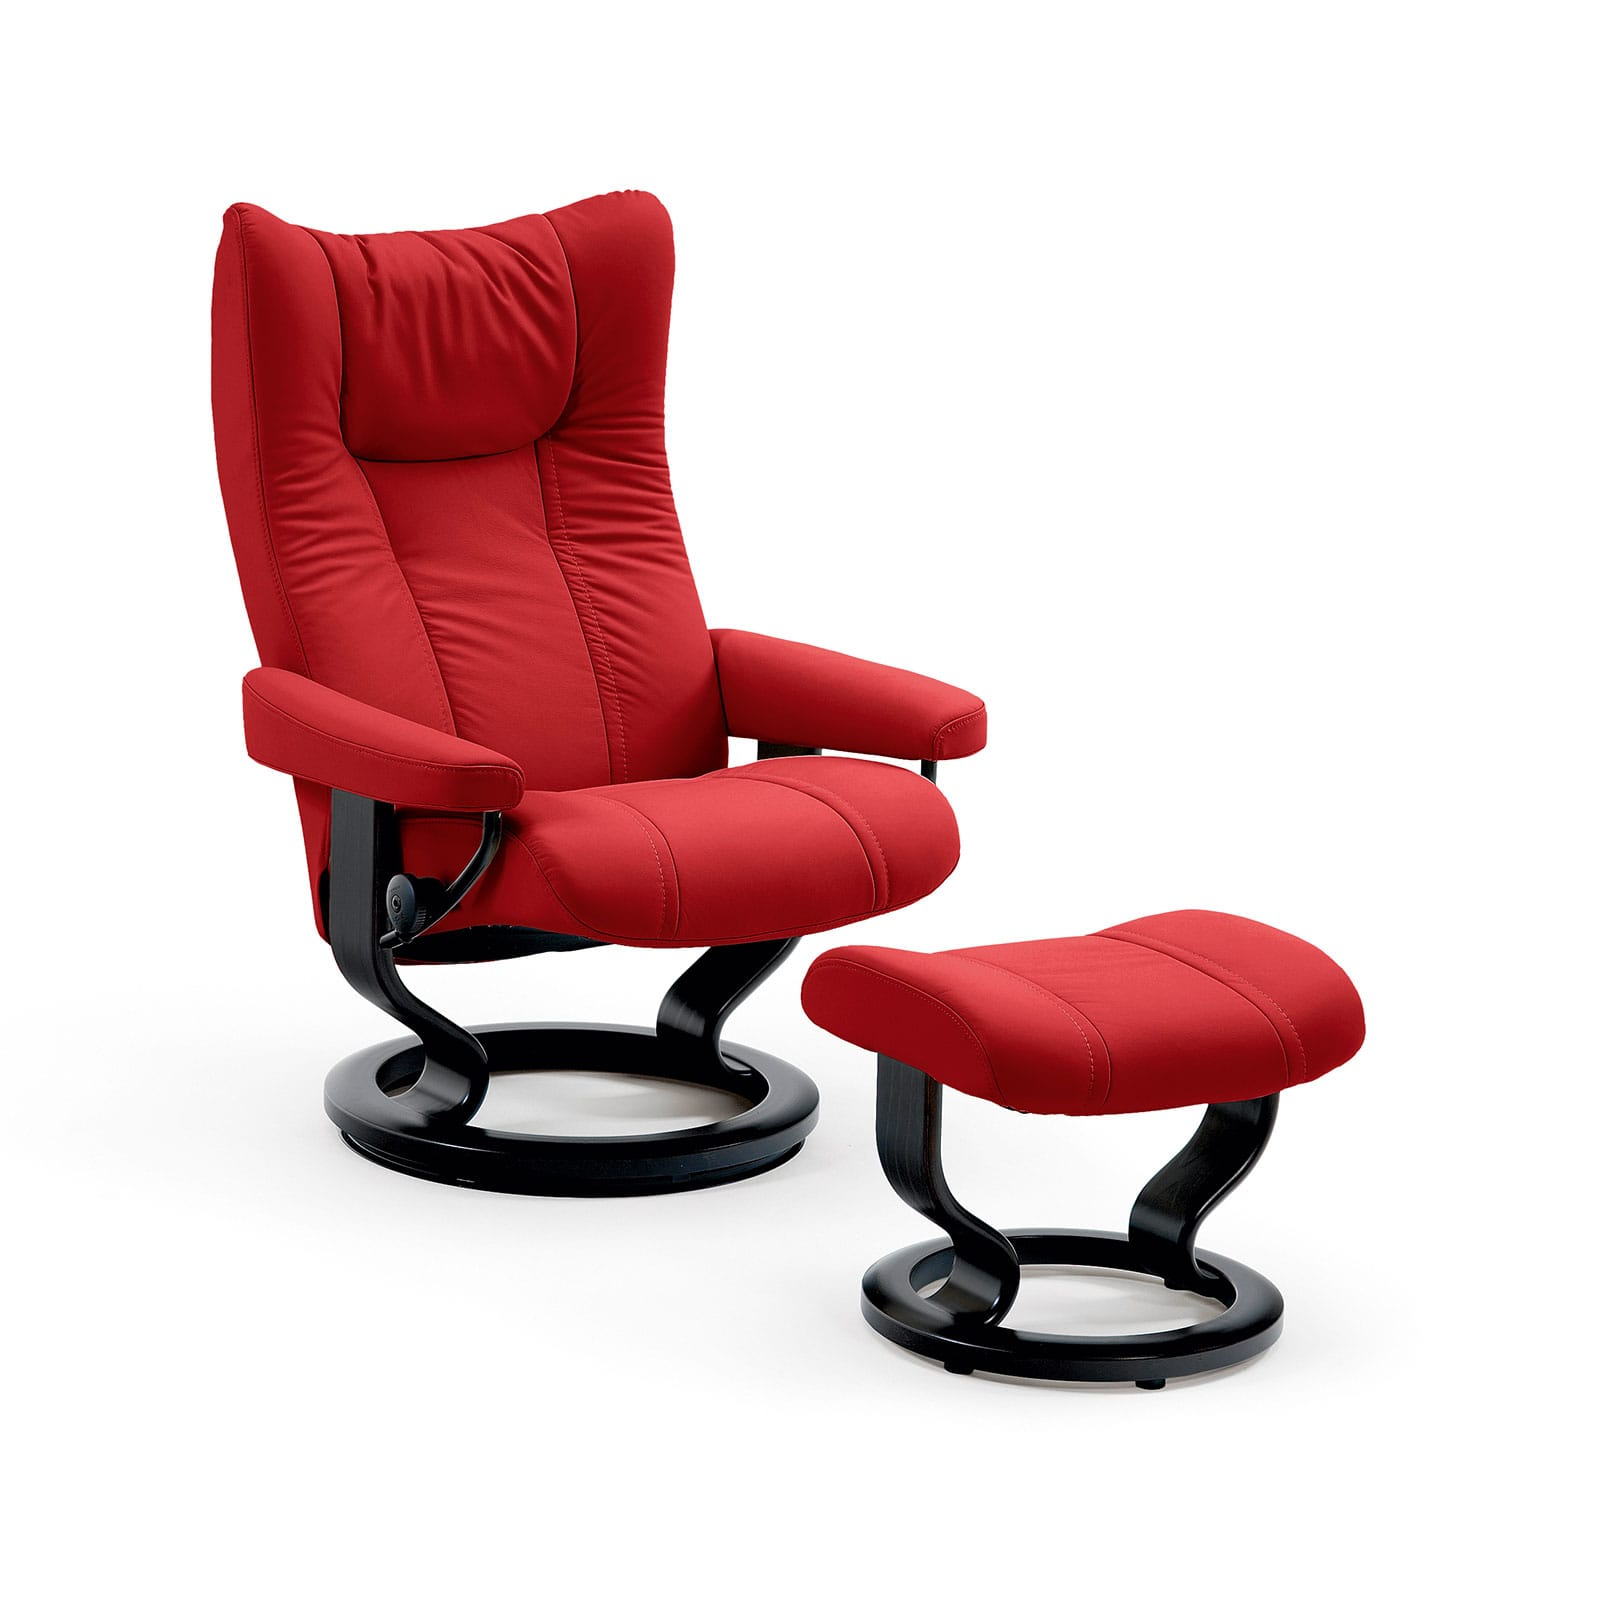 stressless sessel wing batick chilli red mit hocker stressless. Black Bedroom Furniture Sets. Home Design Ideas